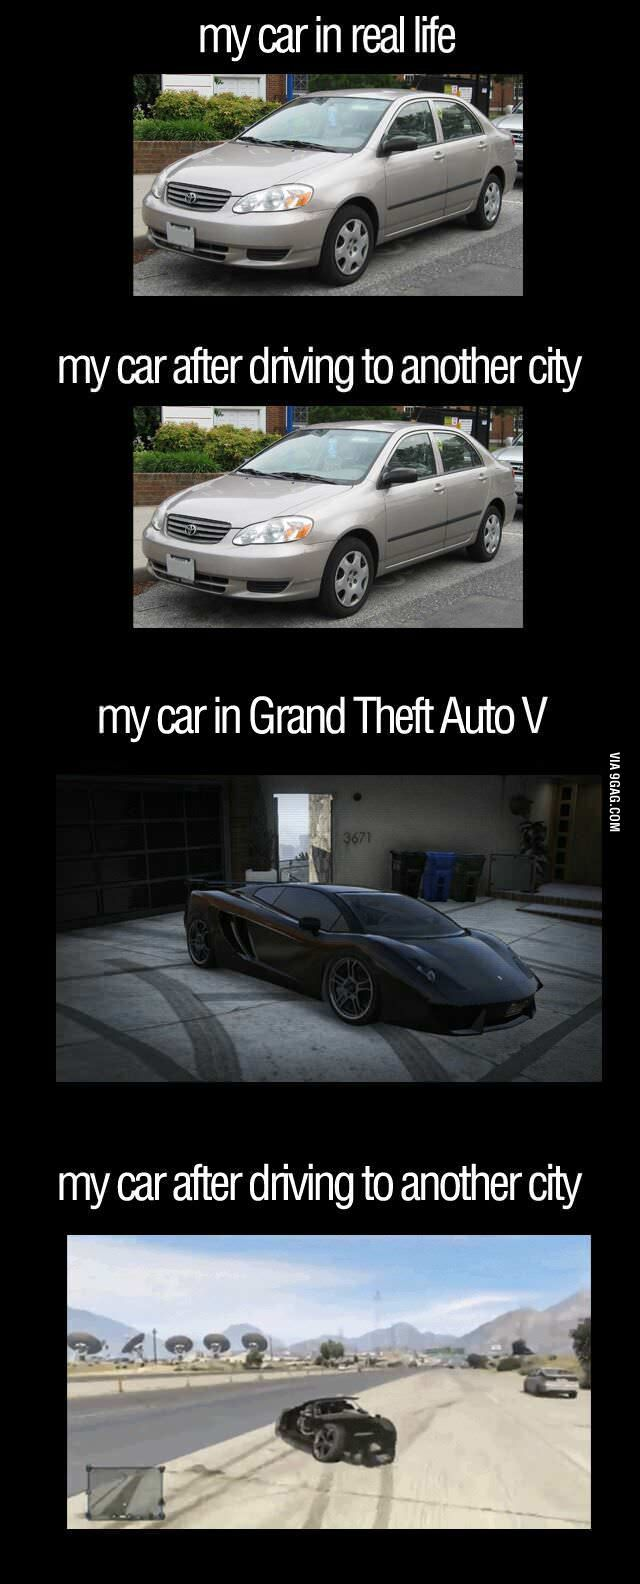 reality vs GTA V.... haha glad i'm not the only one